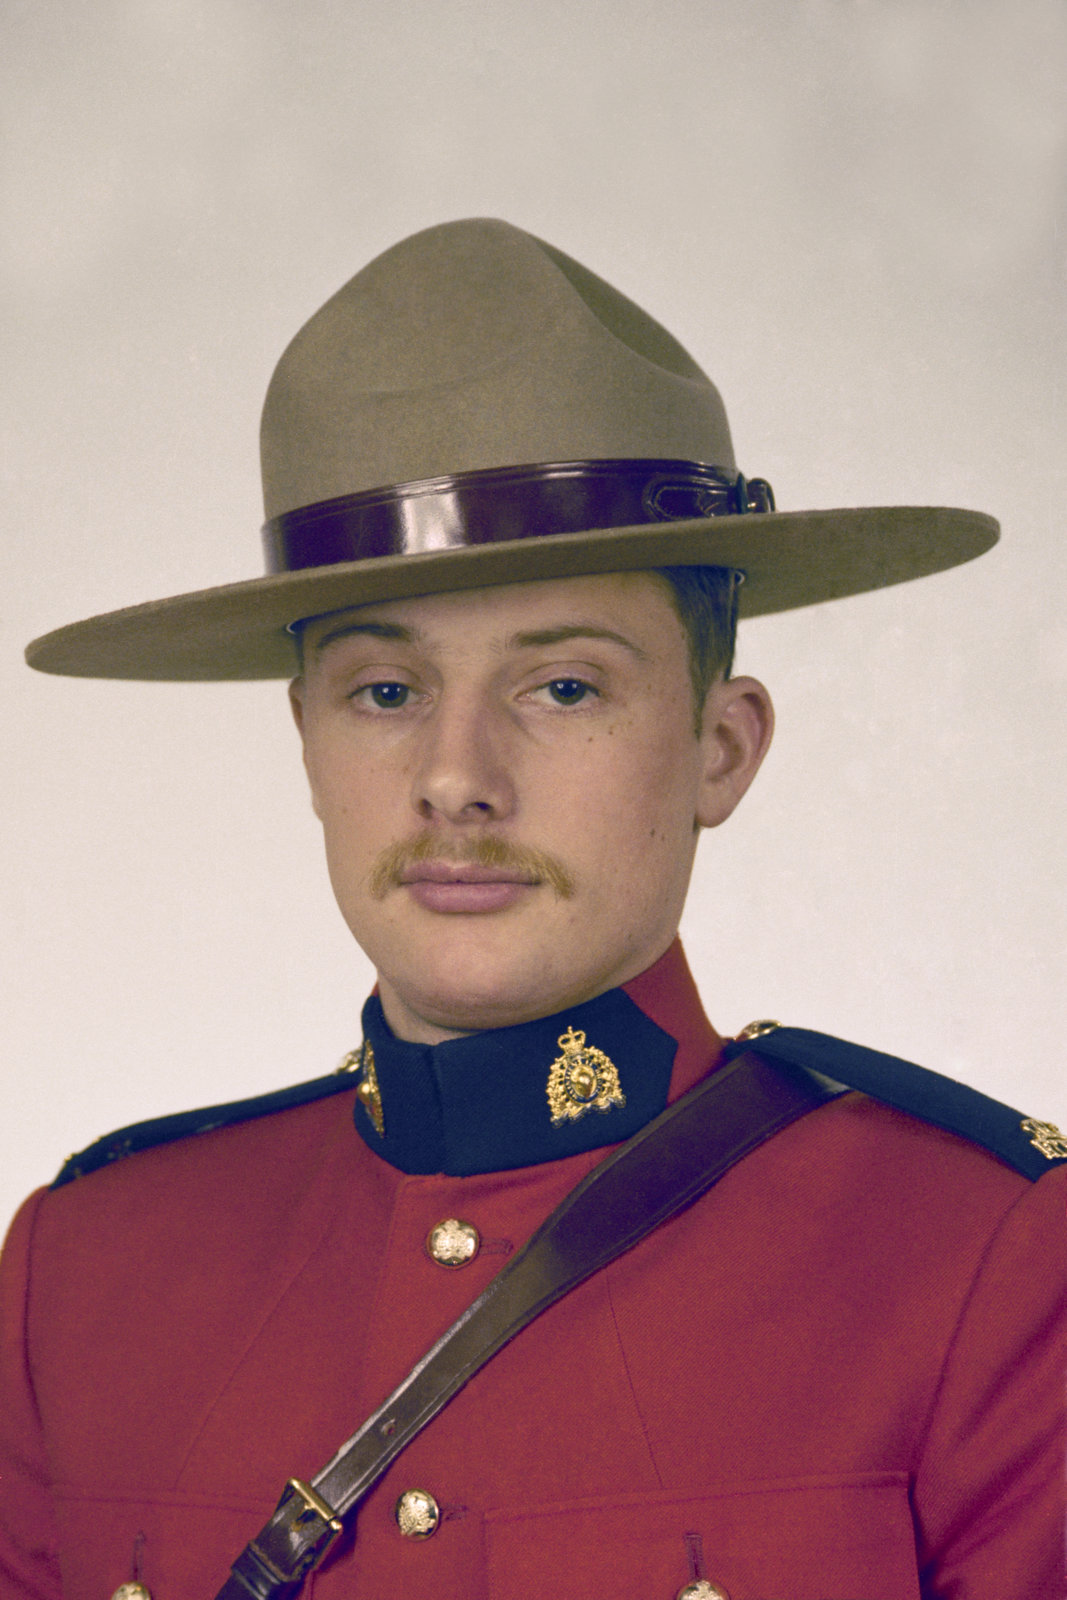 Constable Christopher Colin Riglar– © Her Majesty the Queen in Right of Canada as represented by the Royal Canadian Mounted Police